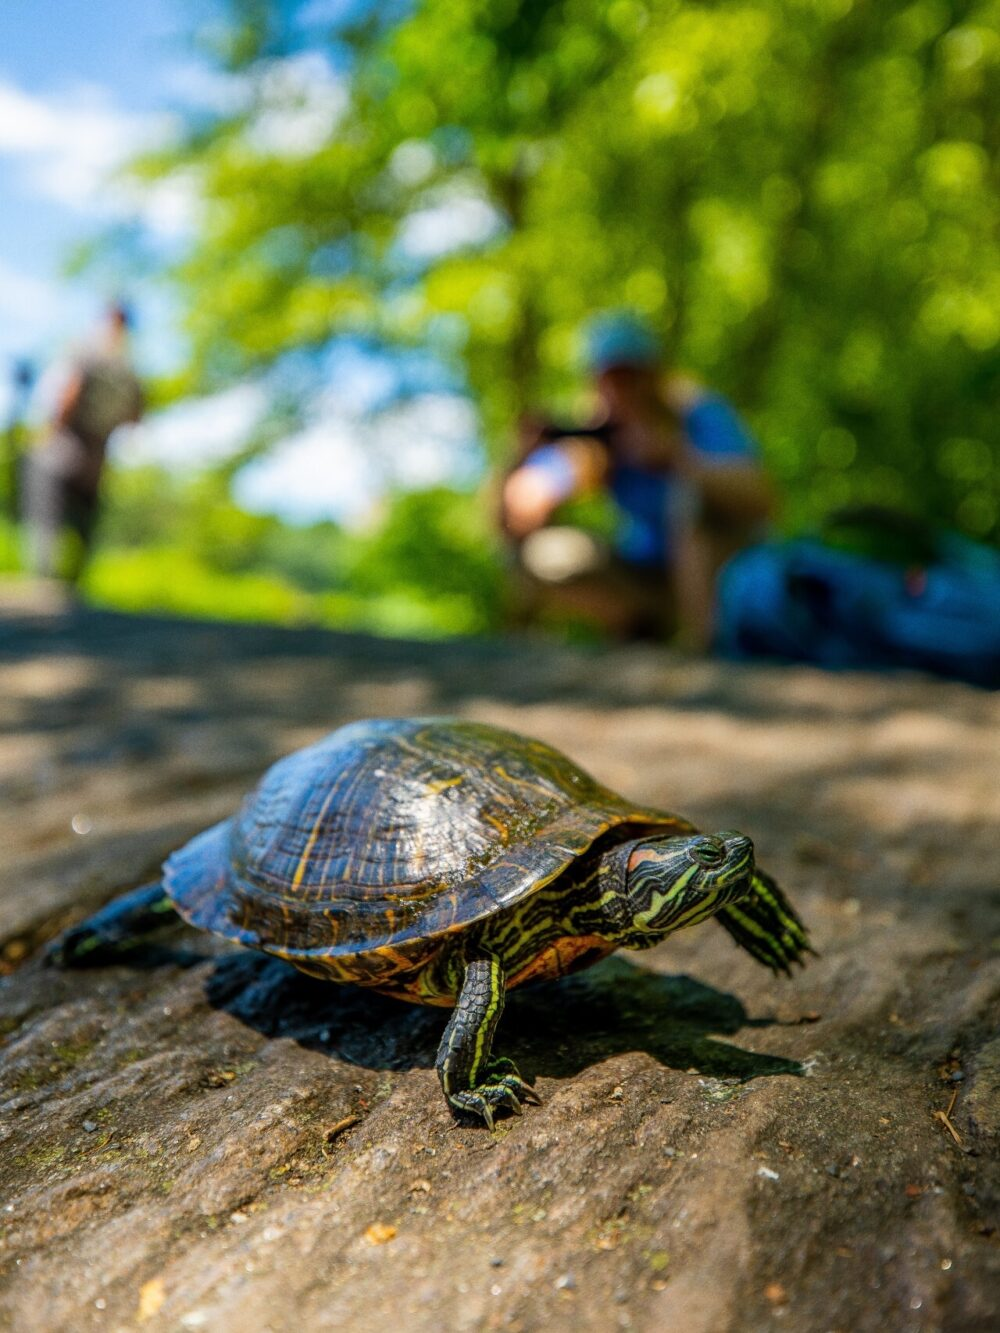 A turtle plods along a rock with a summer day in a soft-focused background